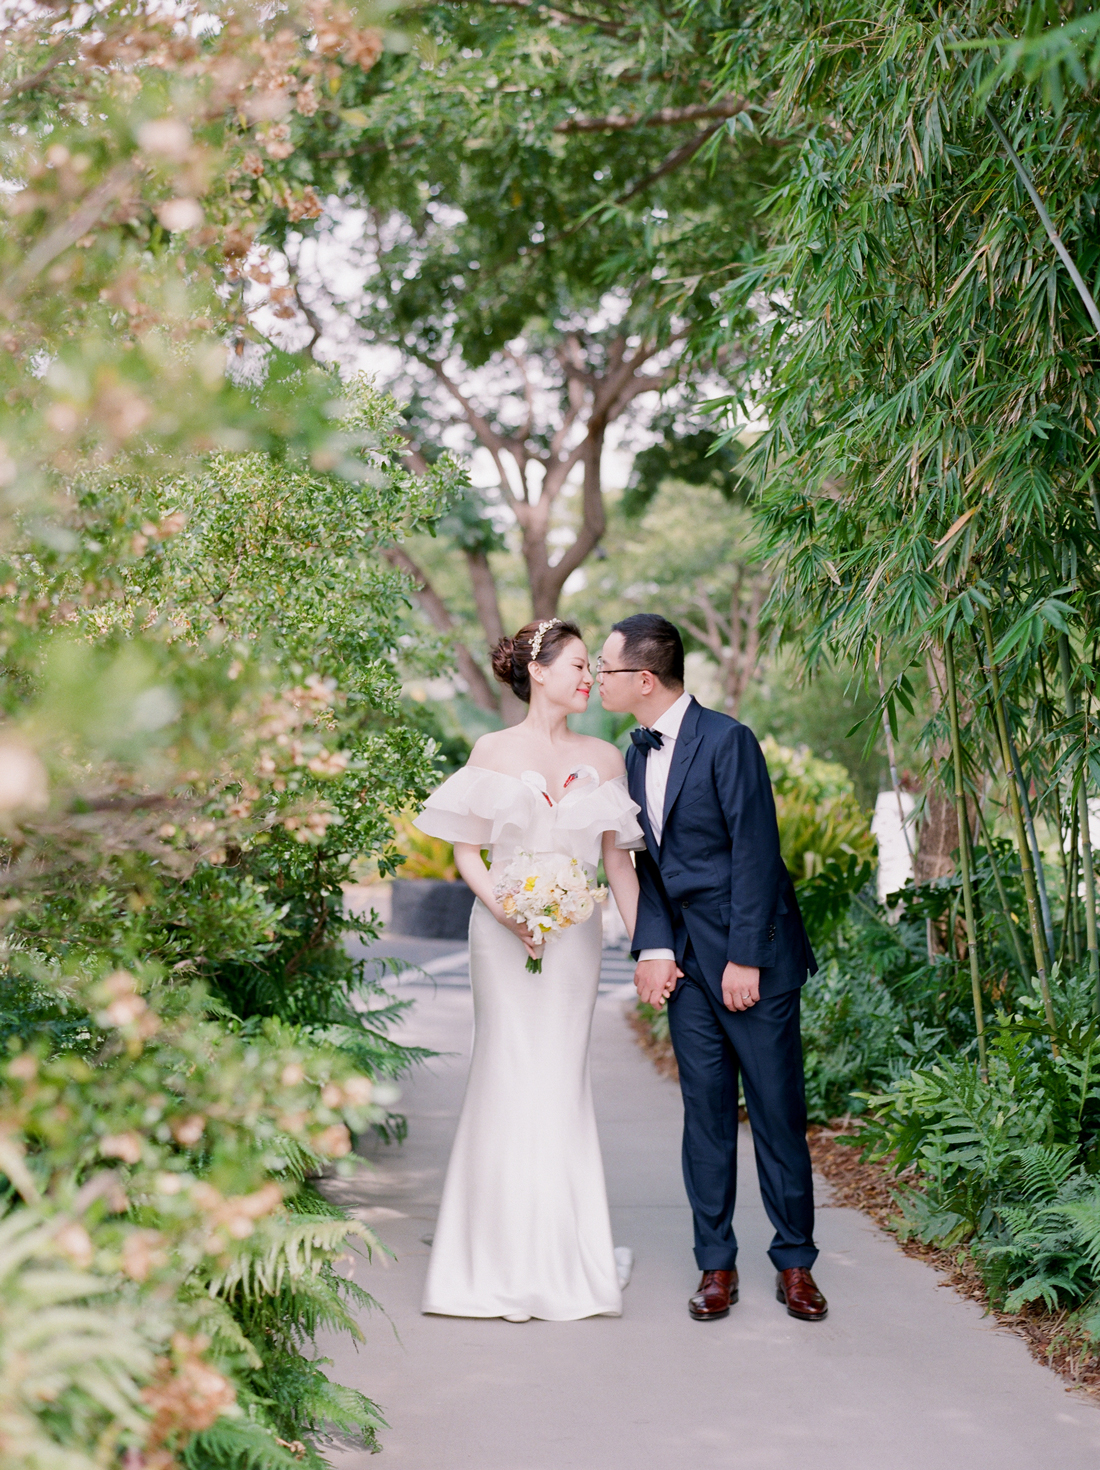 bride and groom walking on outdoor pathway